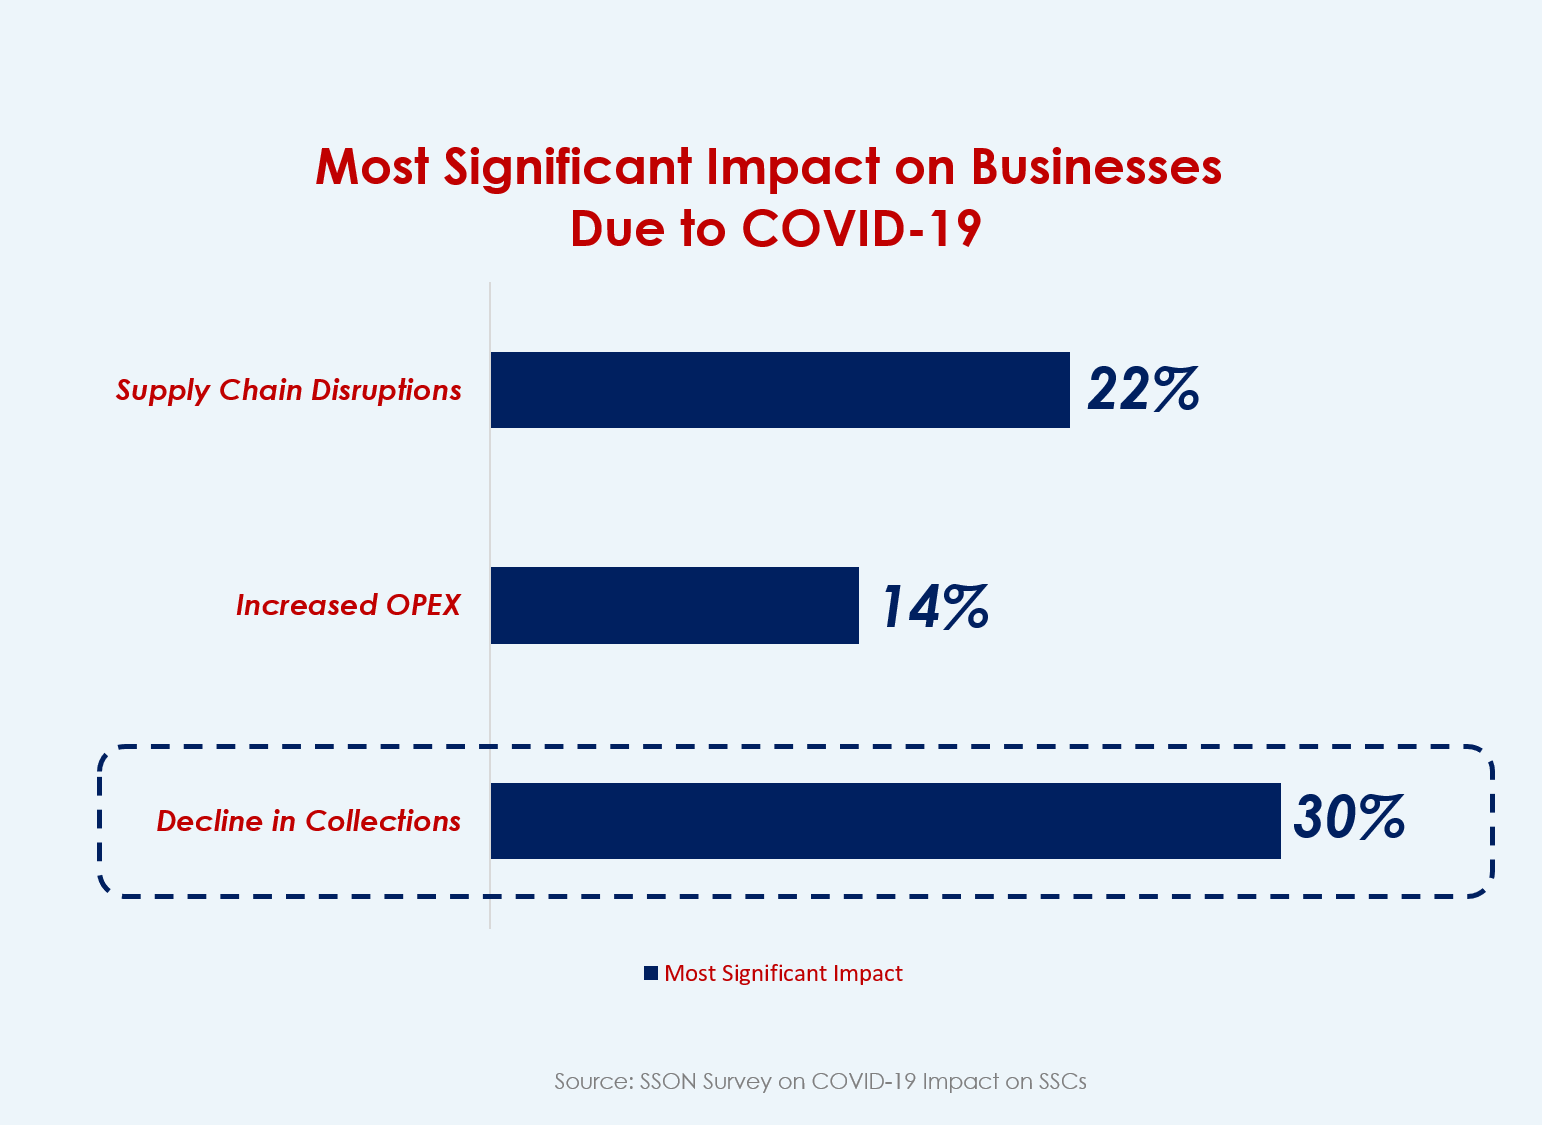 30% of the respondents have identified the decline in collections as a negative business impact as an aftermath of COVID-19